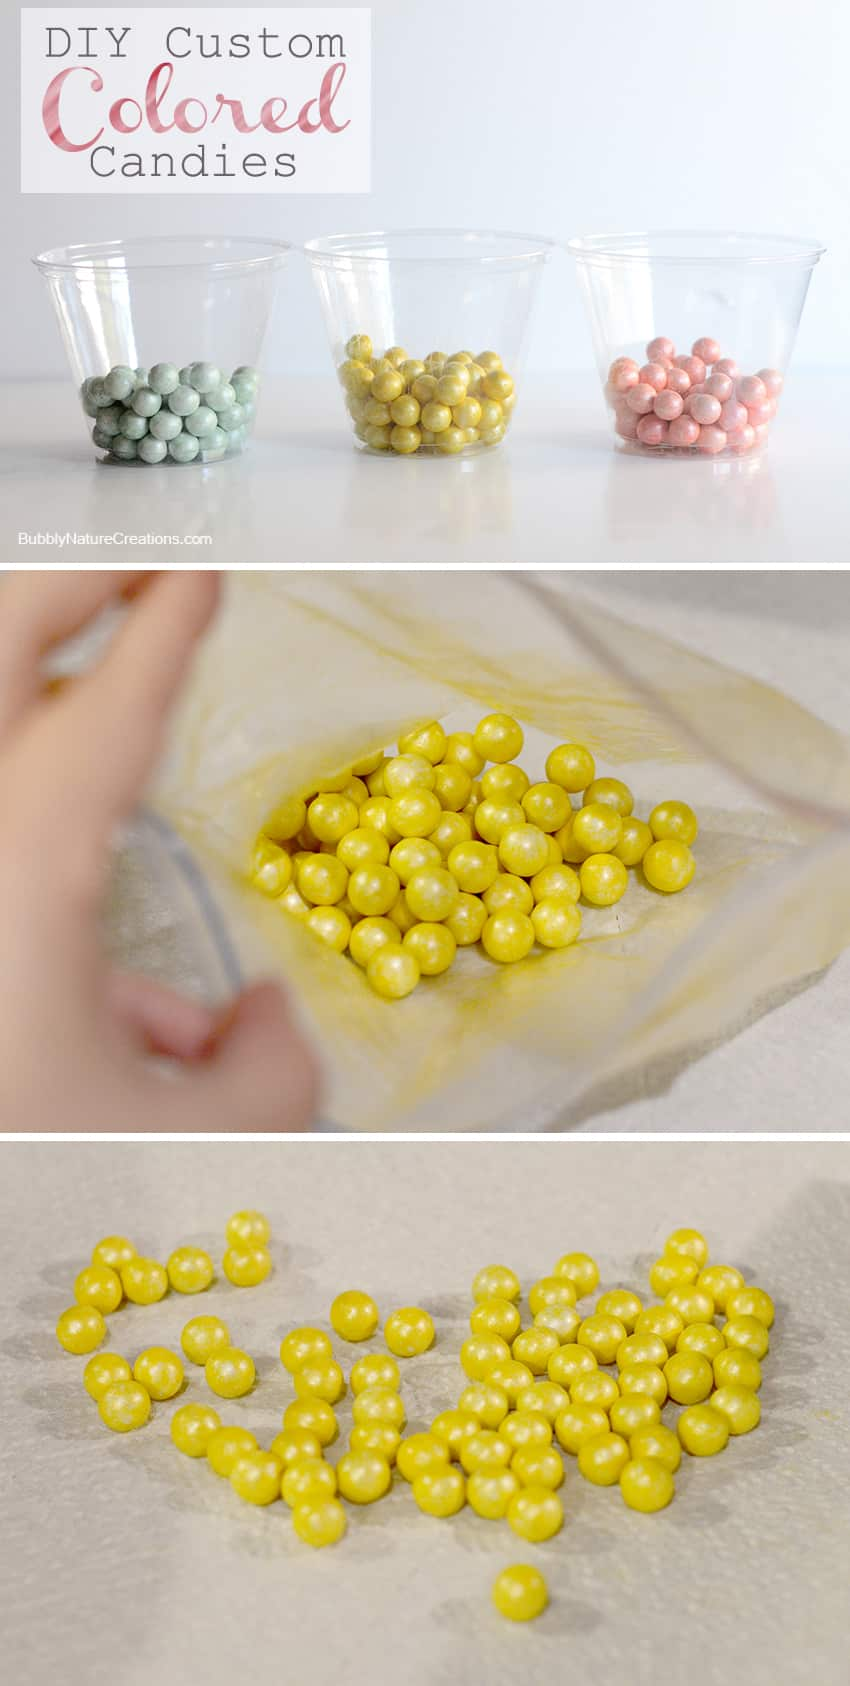 DIY Custom Colored Candies